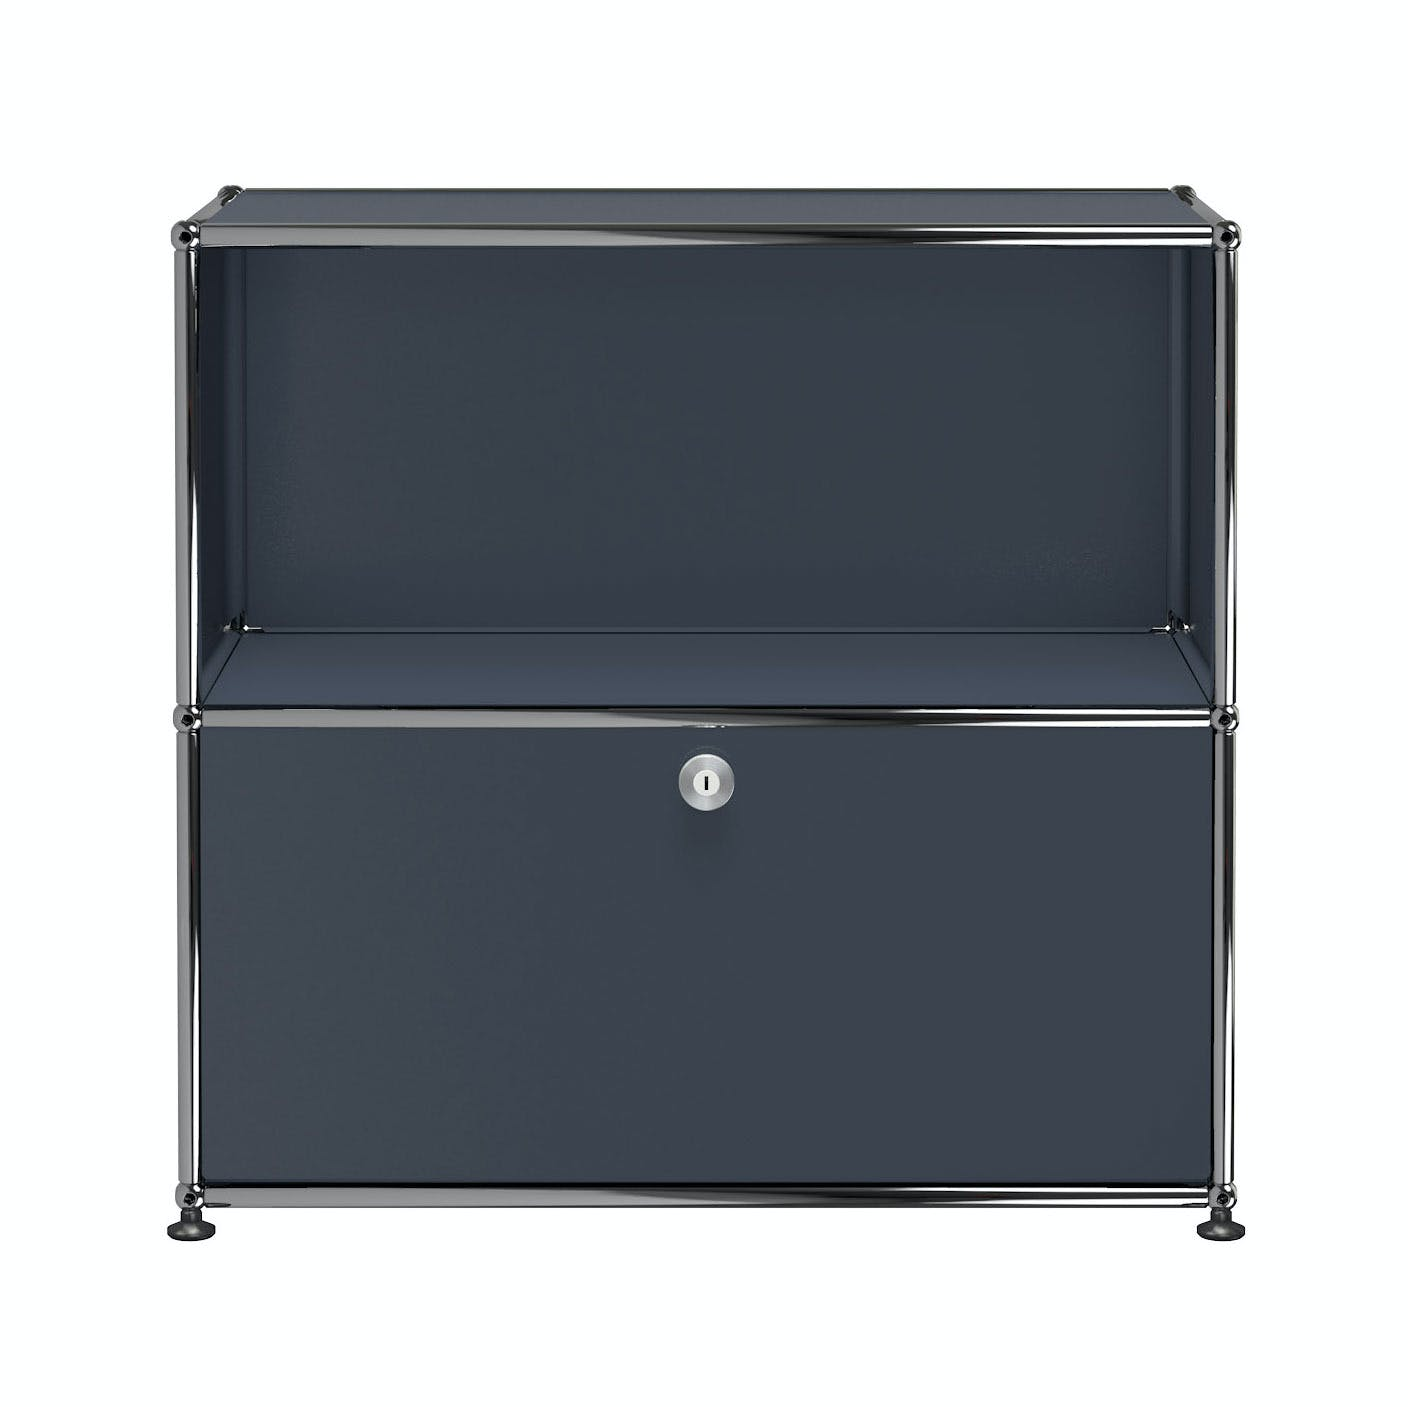 Usm-quick-ship-Haller-Storage-C1B-anthracite-grey-haute-living